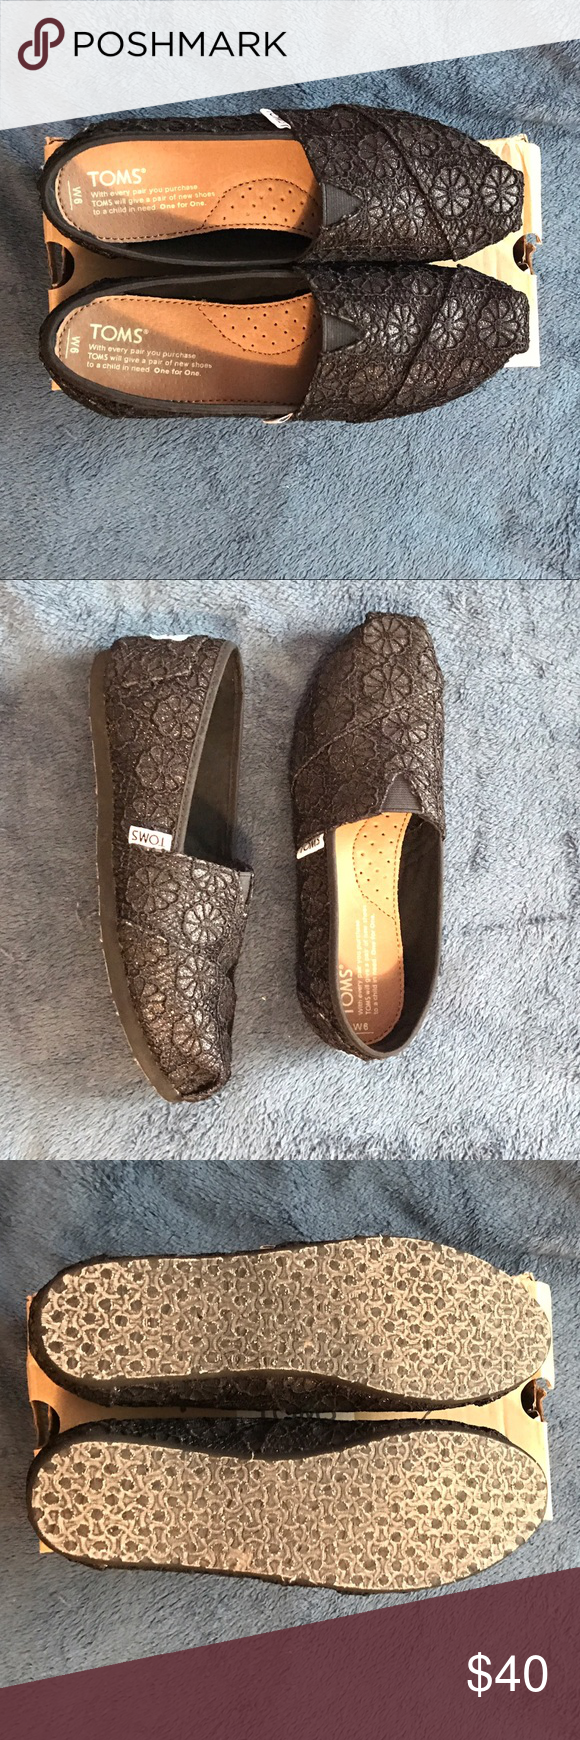 TOMS Brand New without Tags. Super cute TOMS with black lace and slightly sparkly. They go with everything! I'm al and open to reasonable offers! TOMS Shoes Flats & Loafers